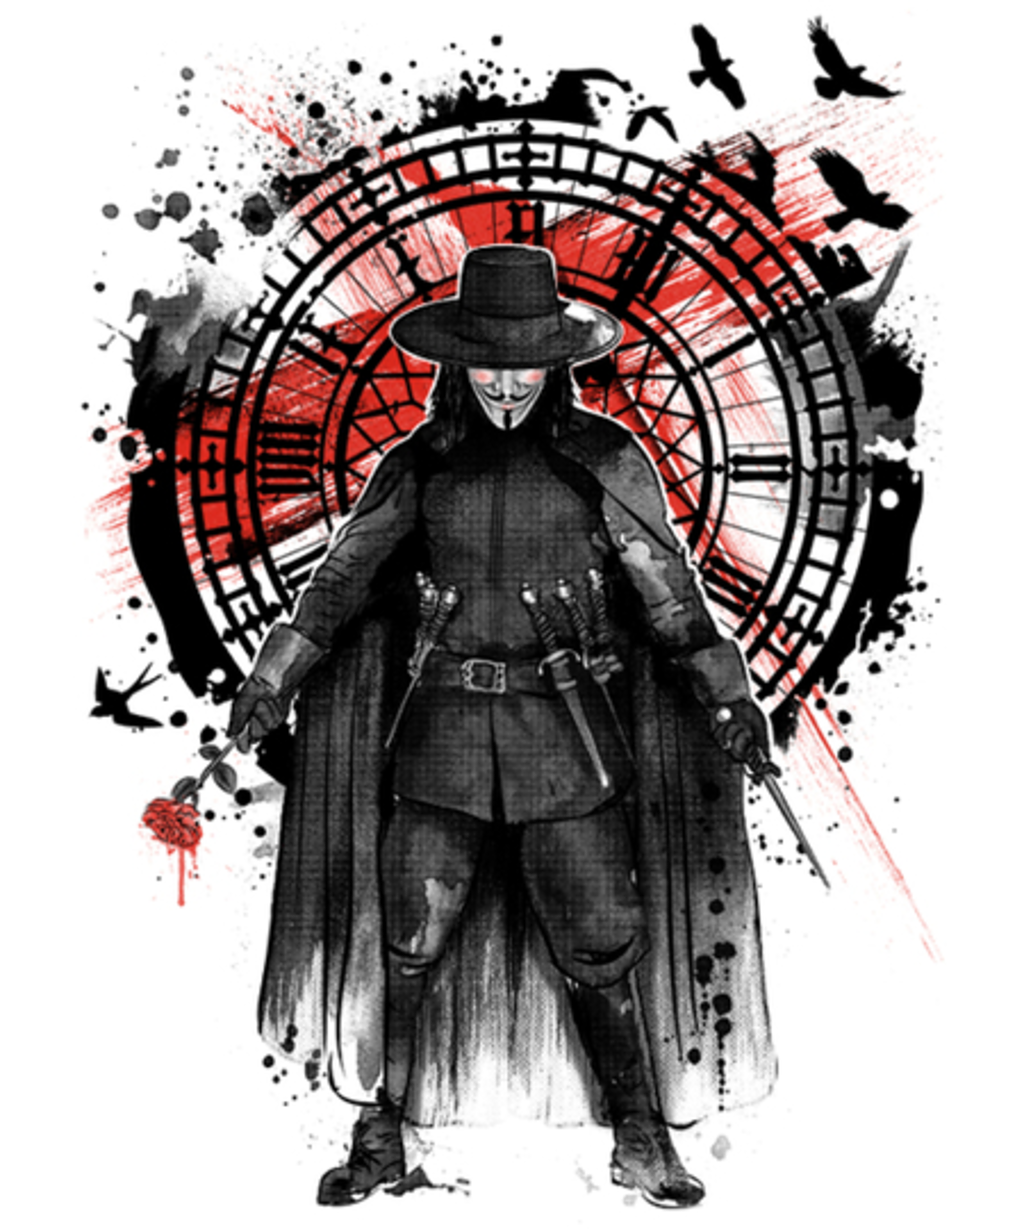 Qwertee: Remember the Fifth of November